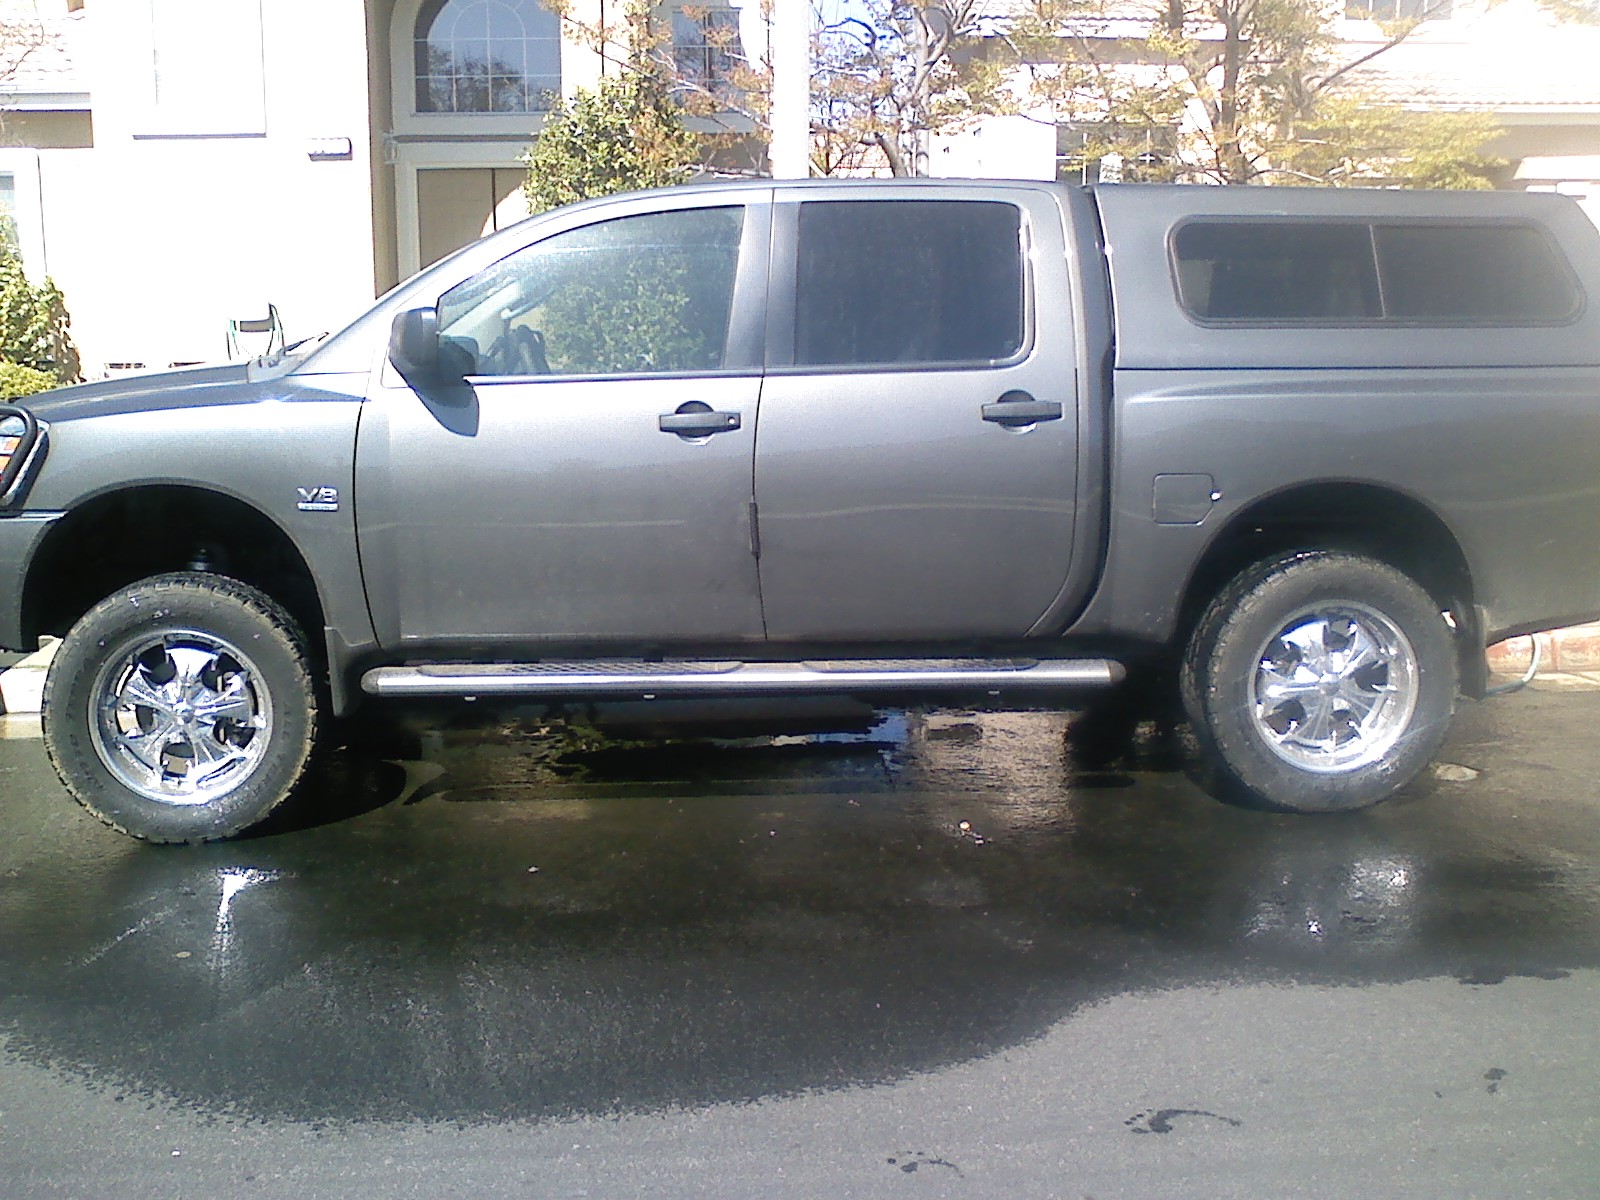 FOR SALE: camper shell and rims | Nissan Titan Forum